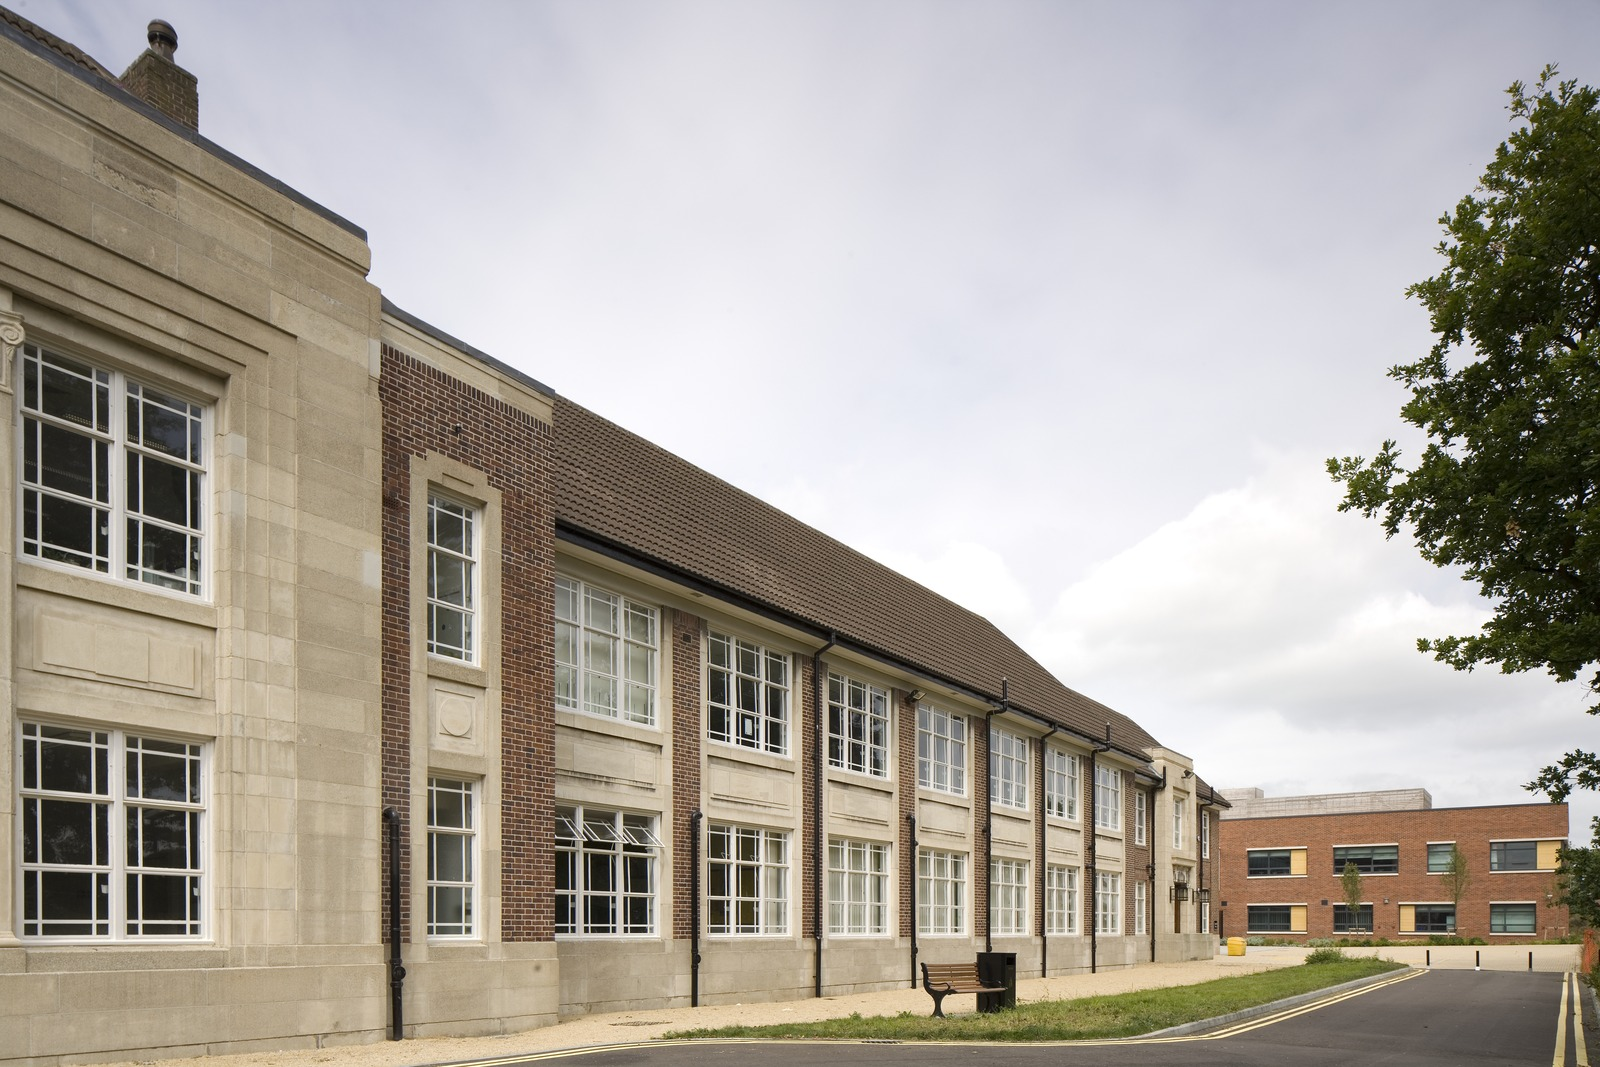 High Storrs School 01